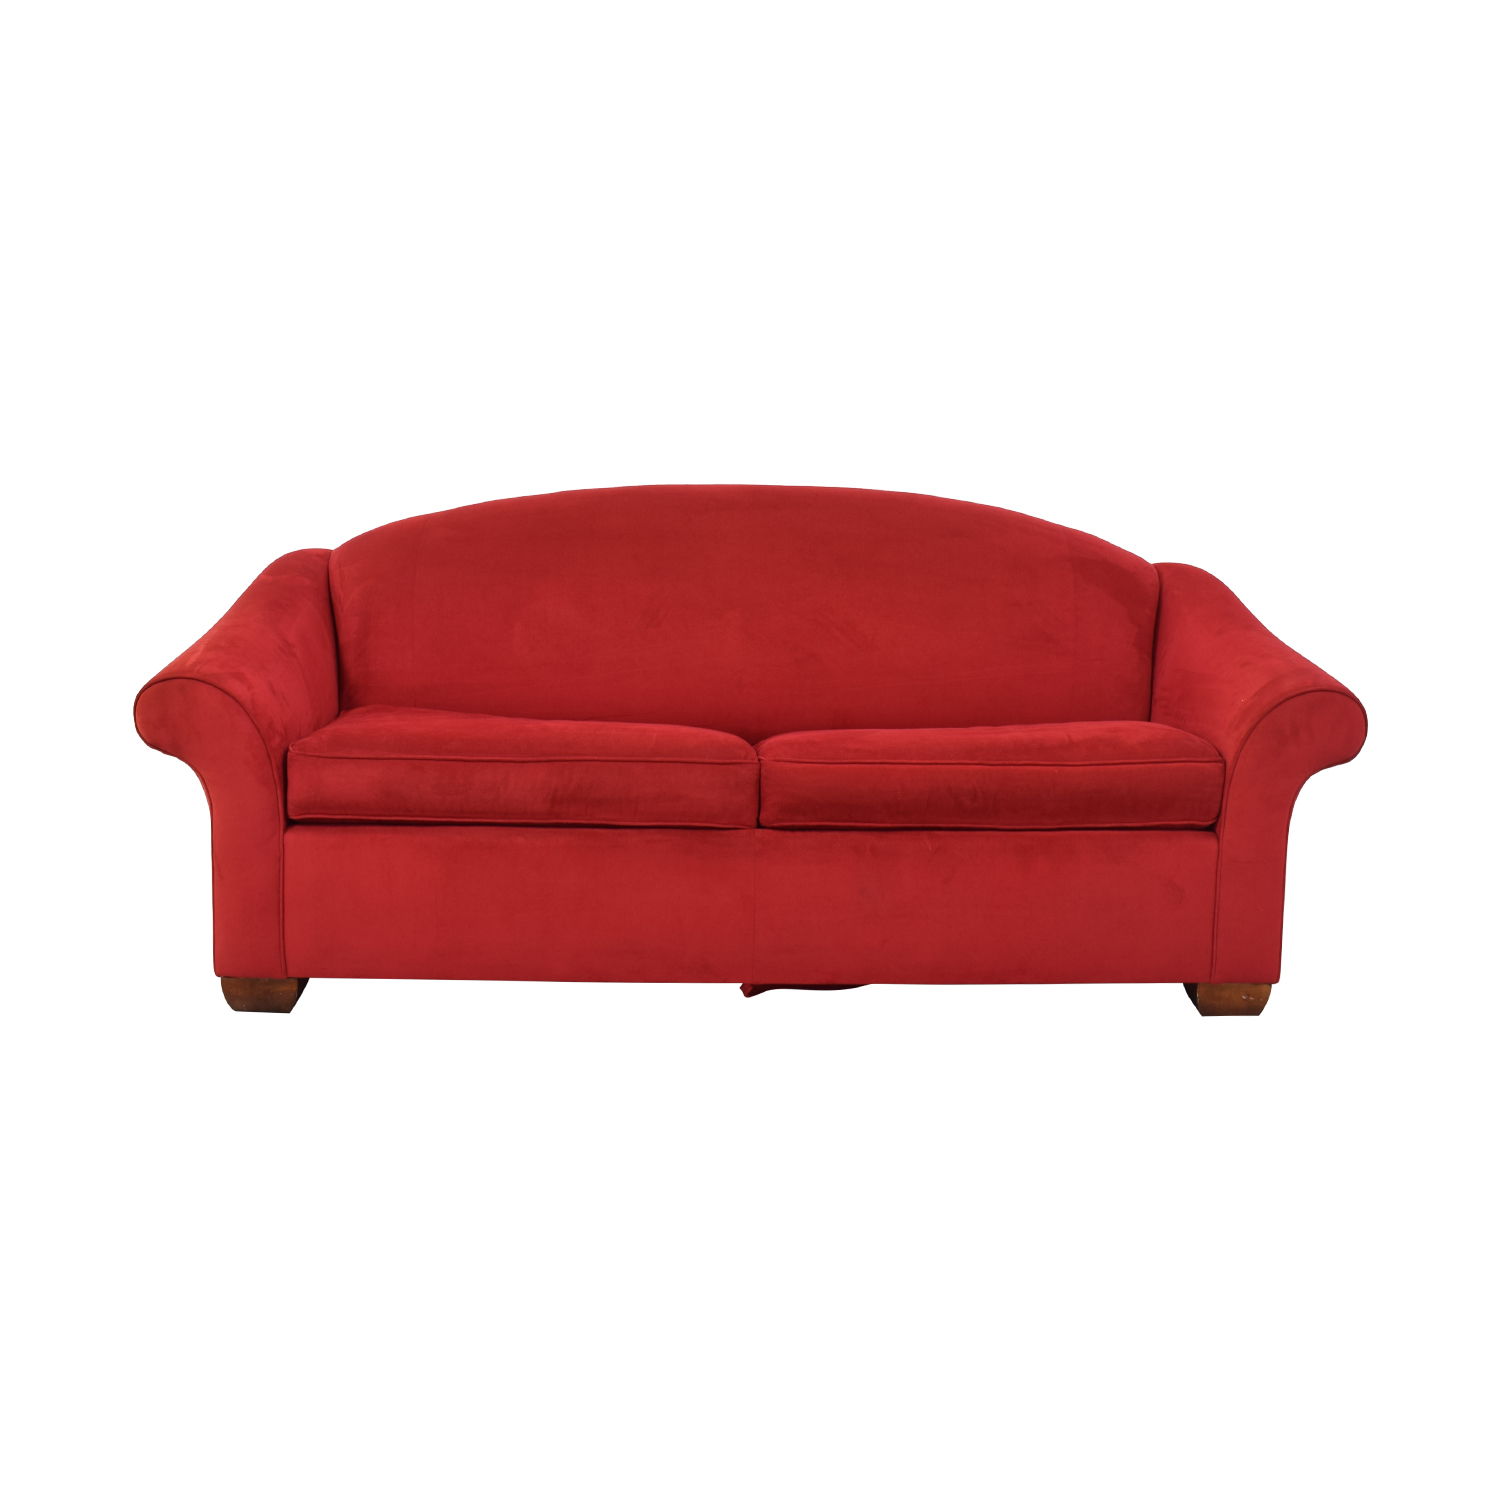 Kravet Red Sleeper Sofa sale